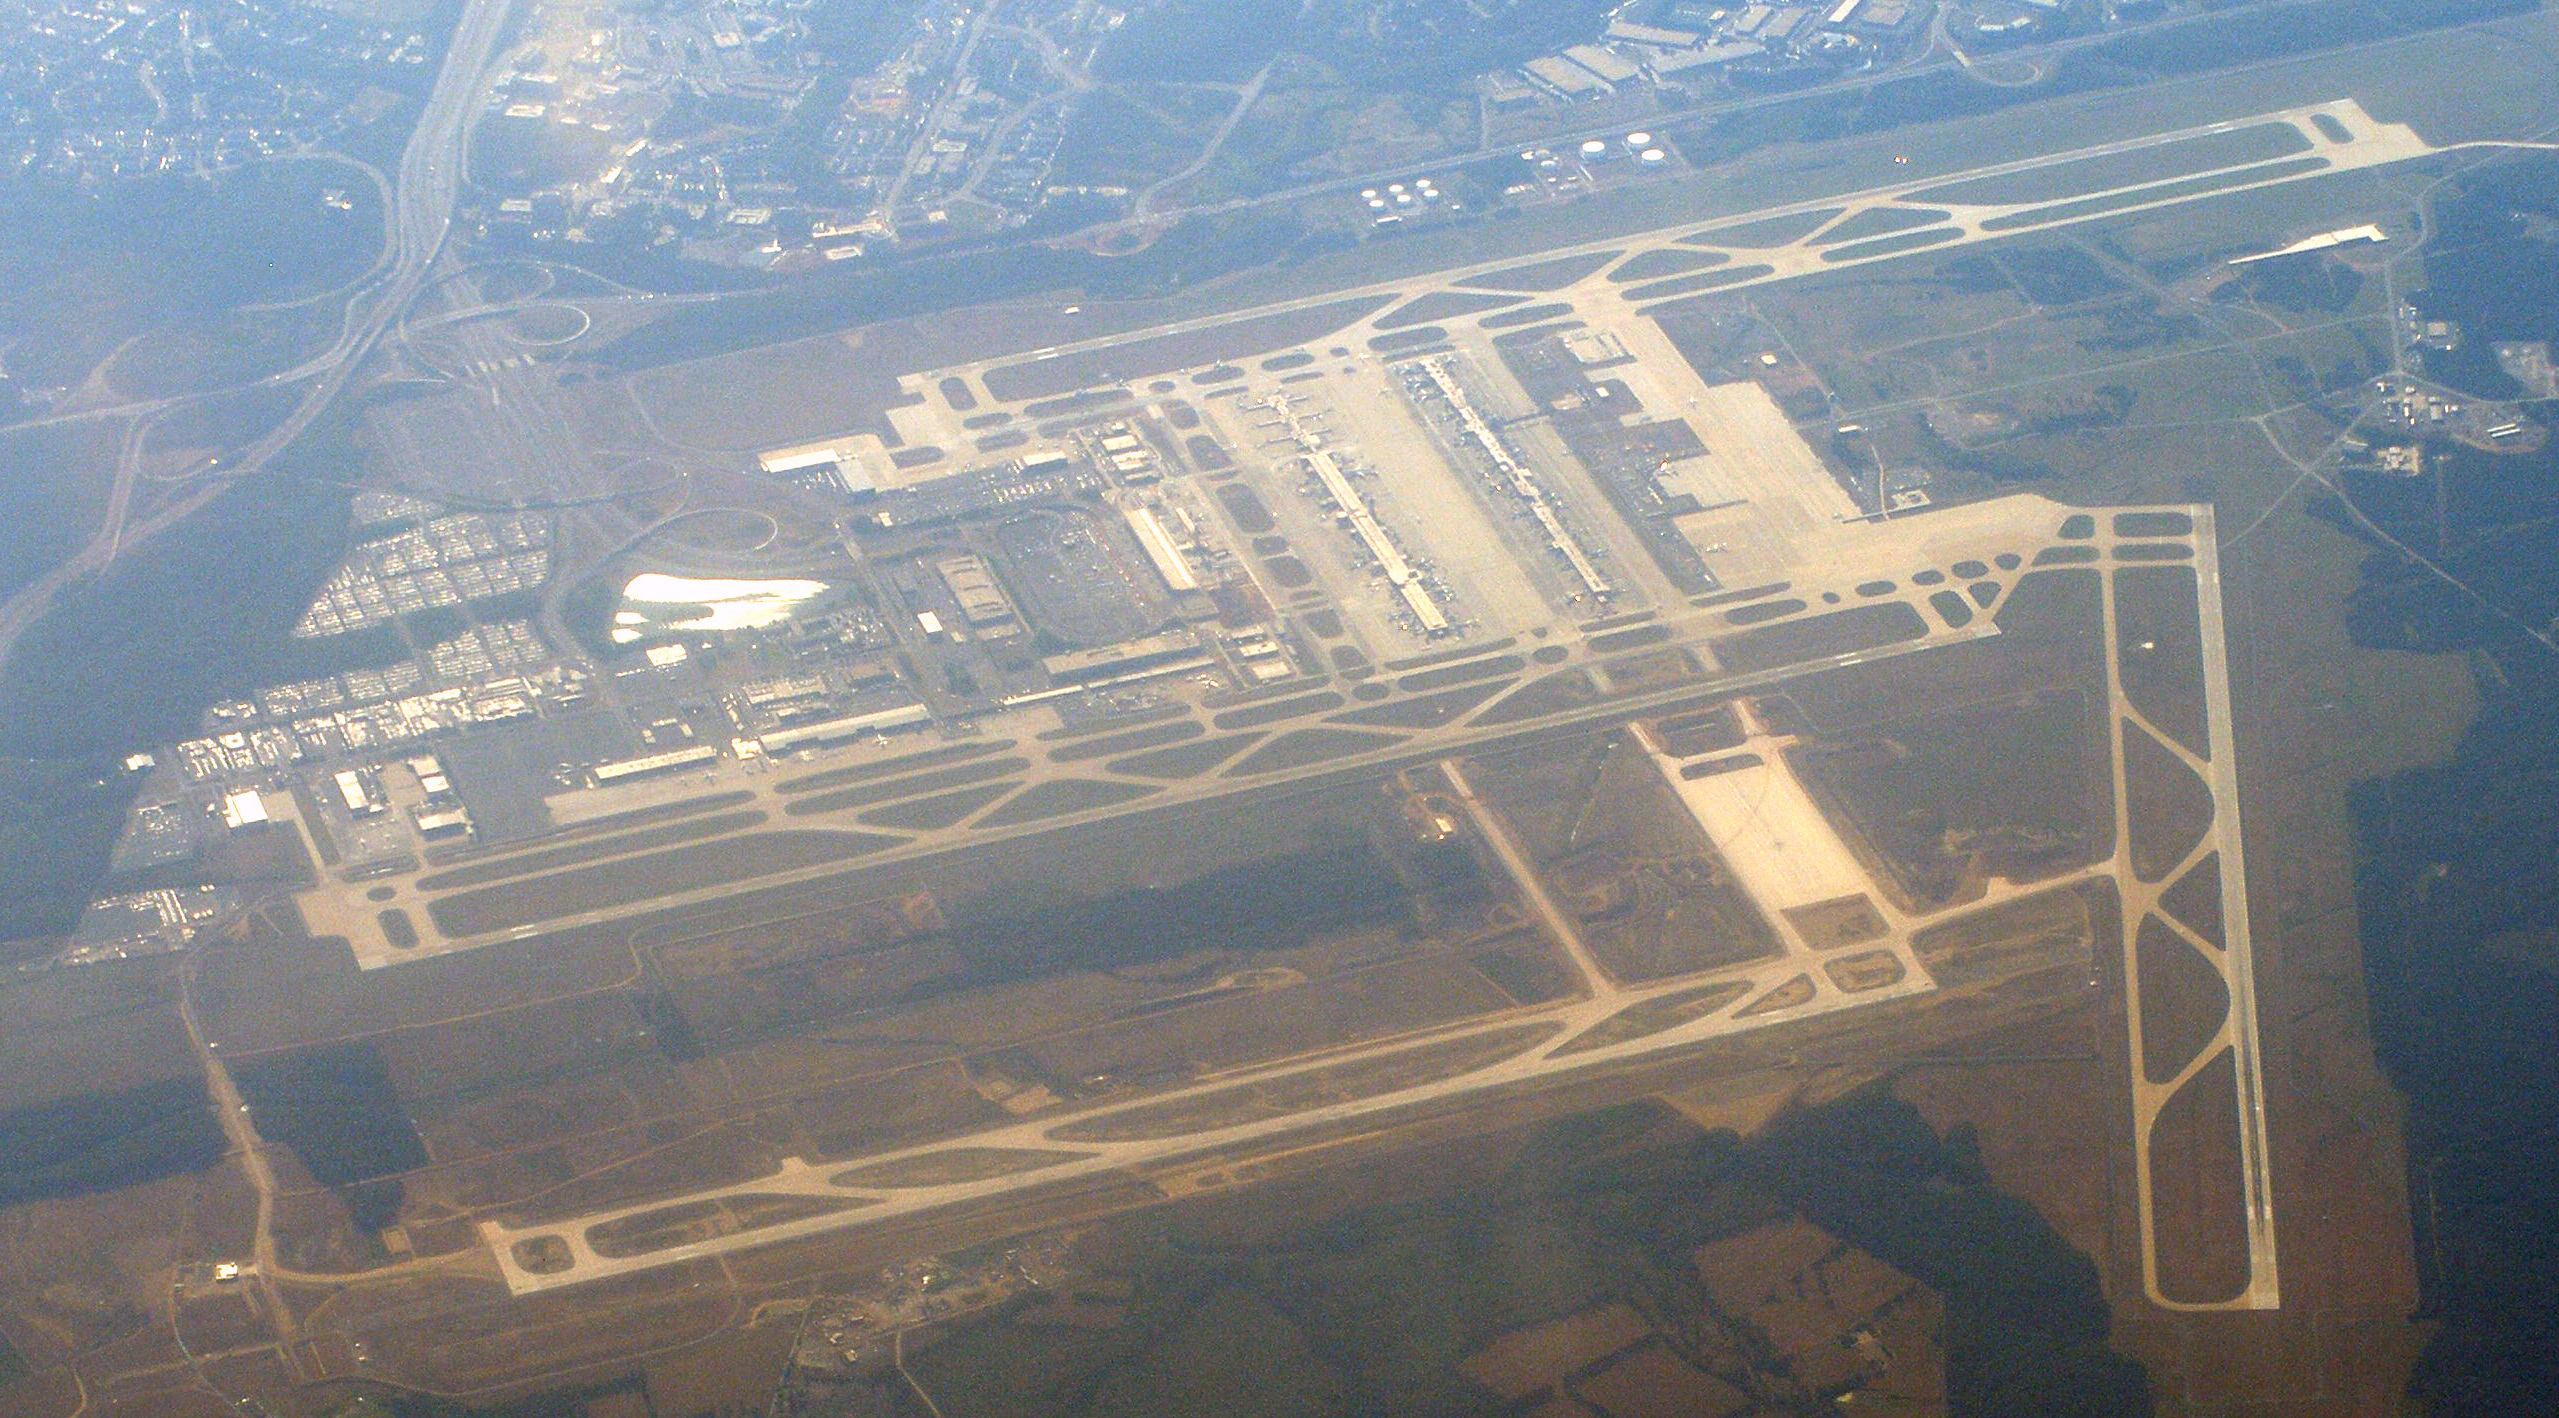 Tour du monde en liner View_of_IAD_from_airplane_a